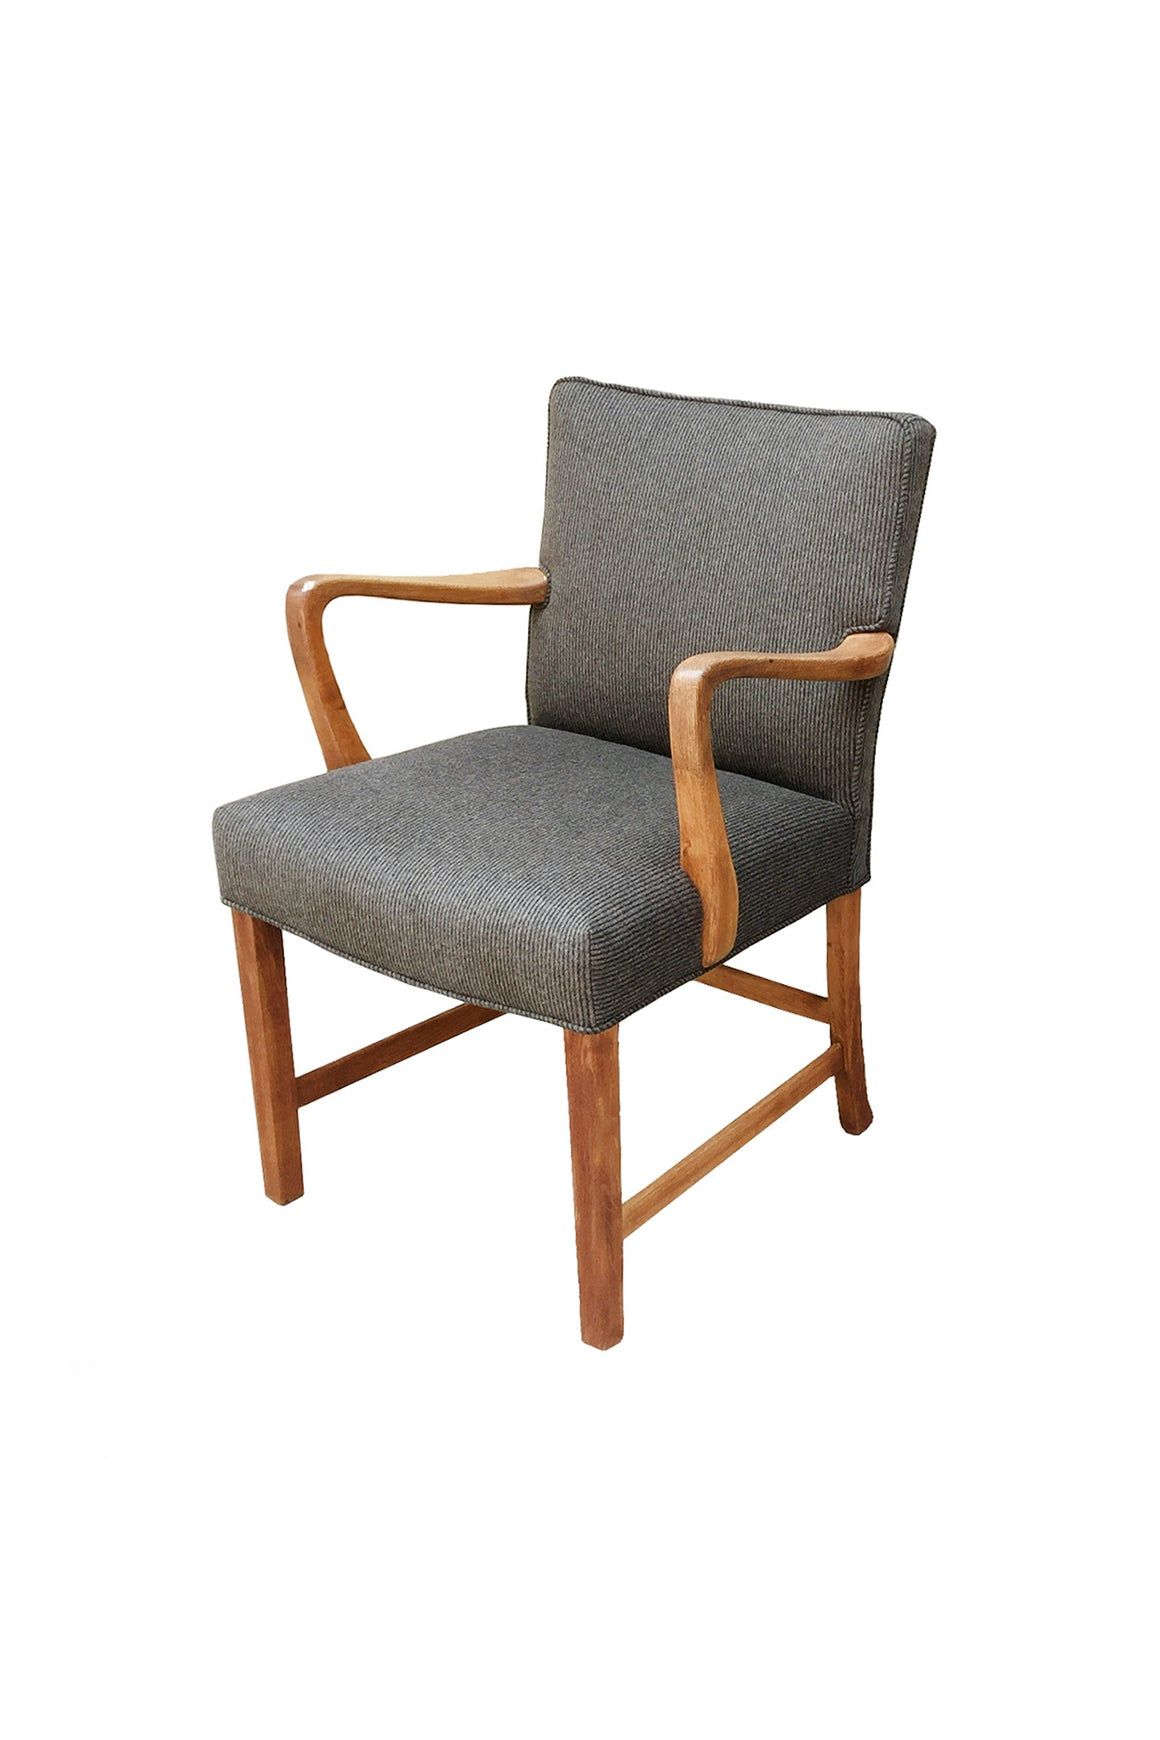 1940s Danish Oak Armchair by Aksel Bender Madsen - 2 Available